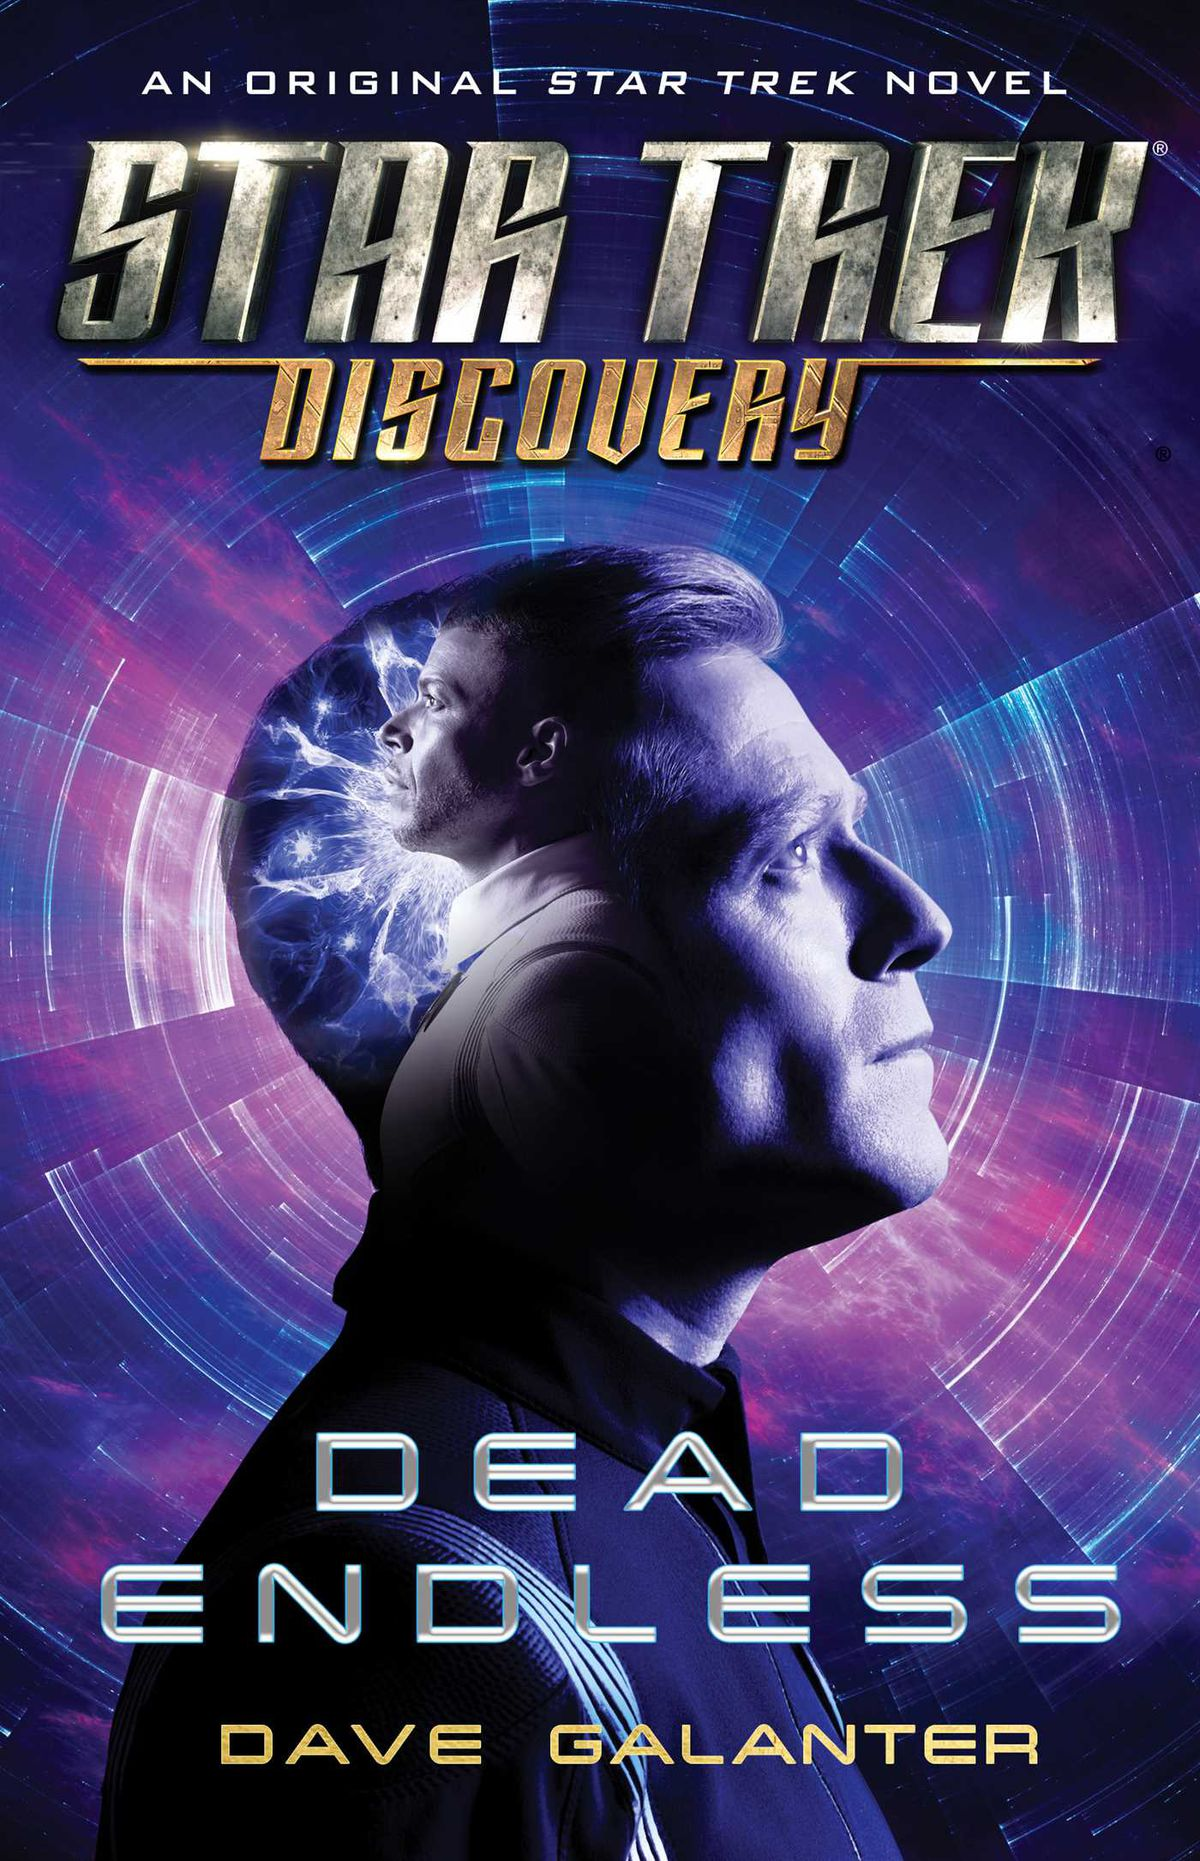 Star Trek Discovery: Dead Endless by Dave Galanter cover: Stamets in profile looking up